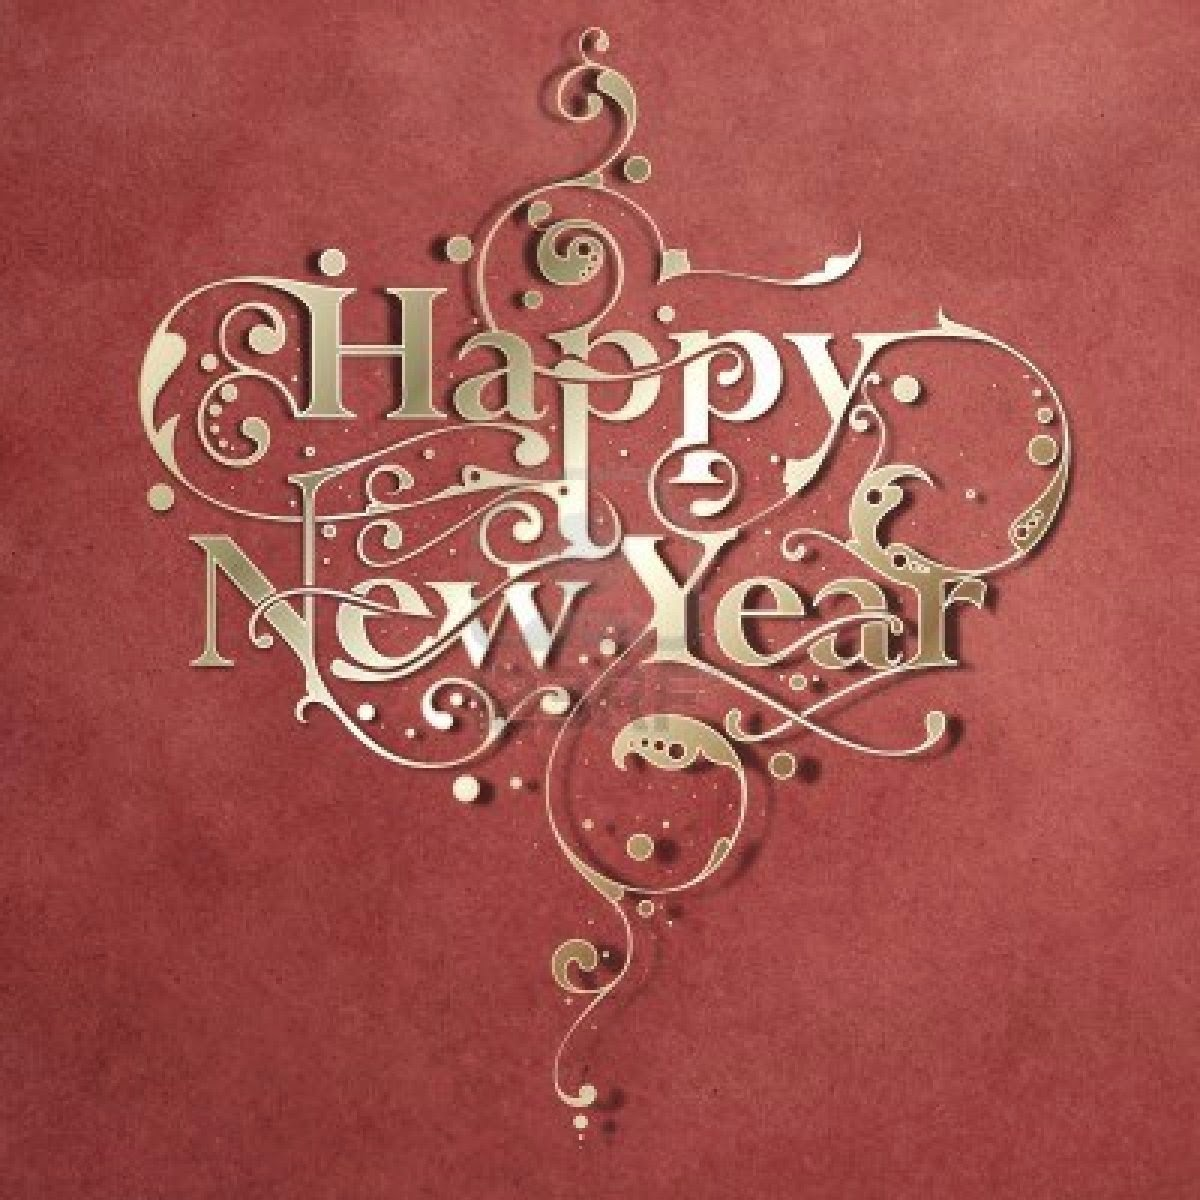 Happy New Year 2019 BBM  Status Messages  Wallpapers